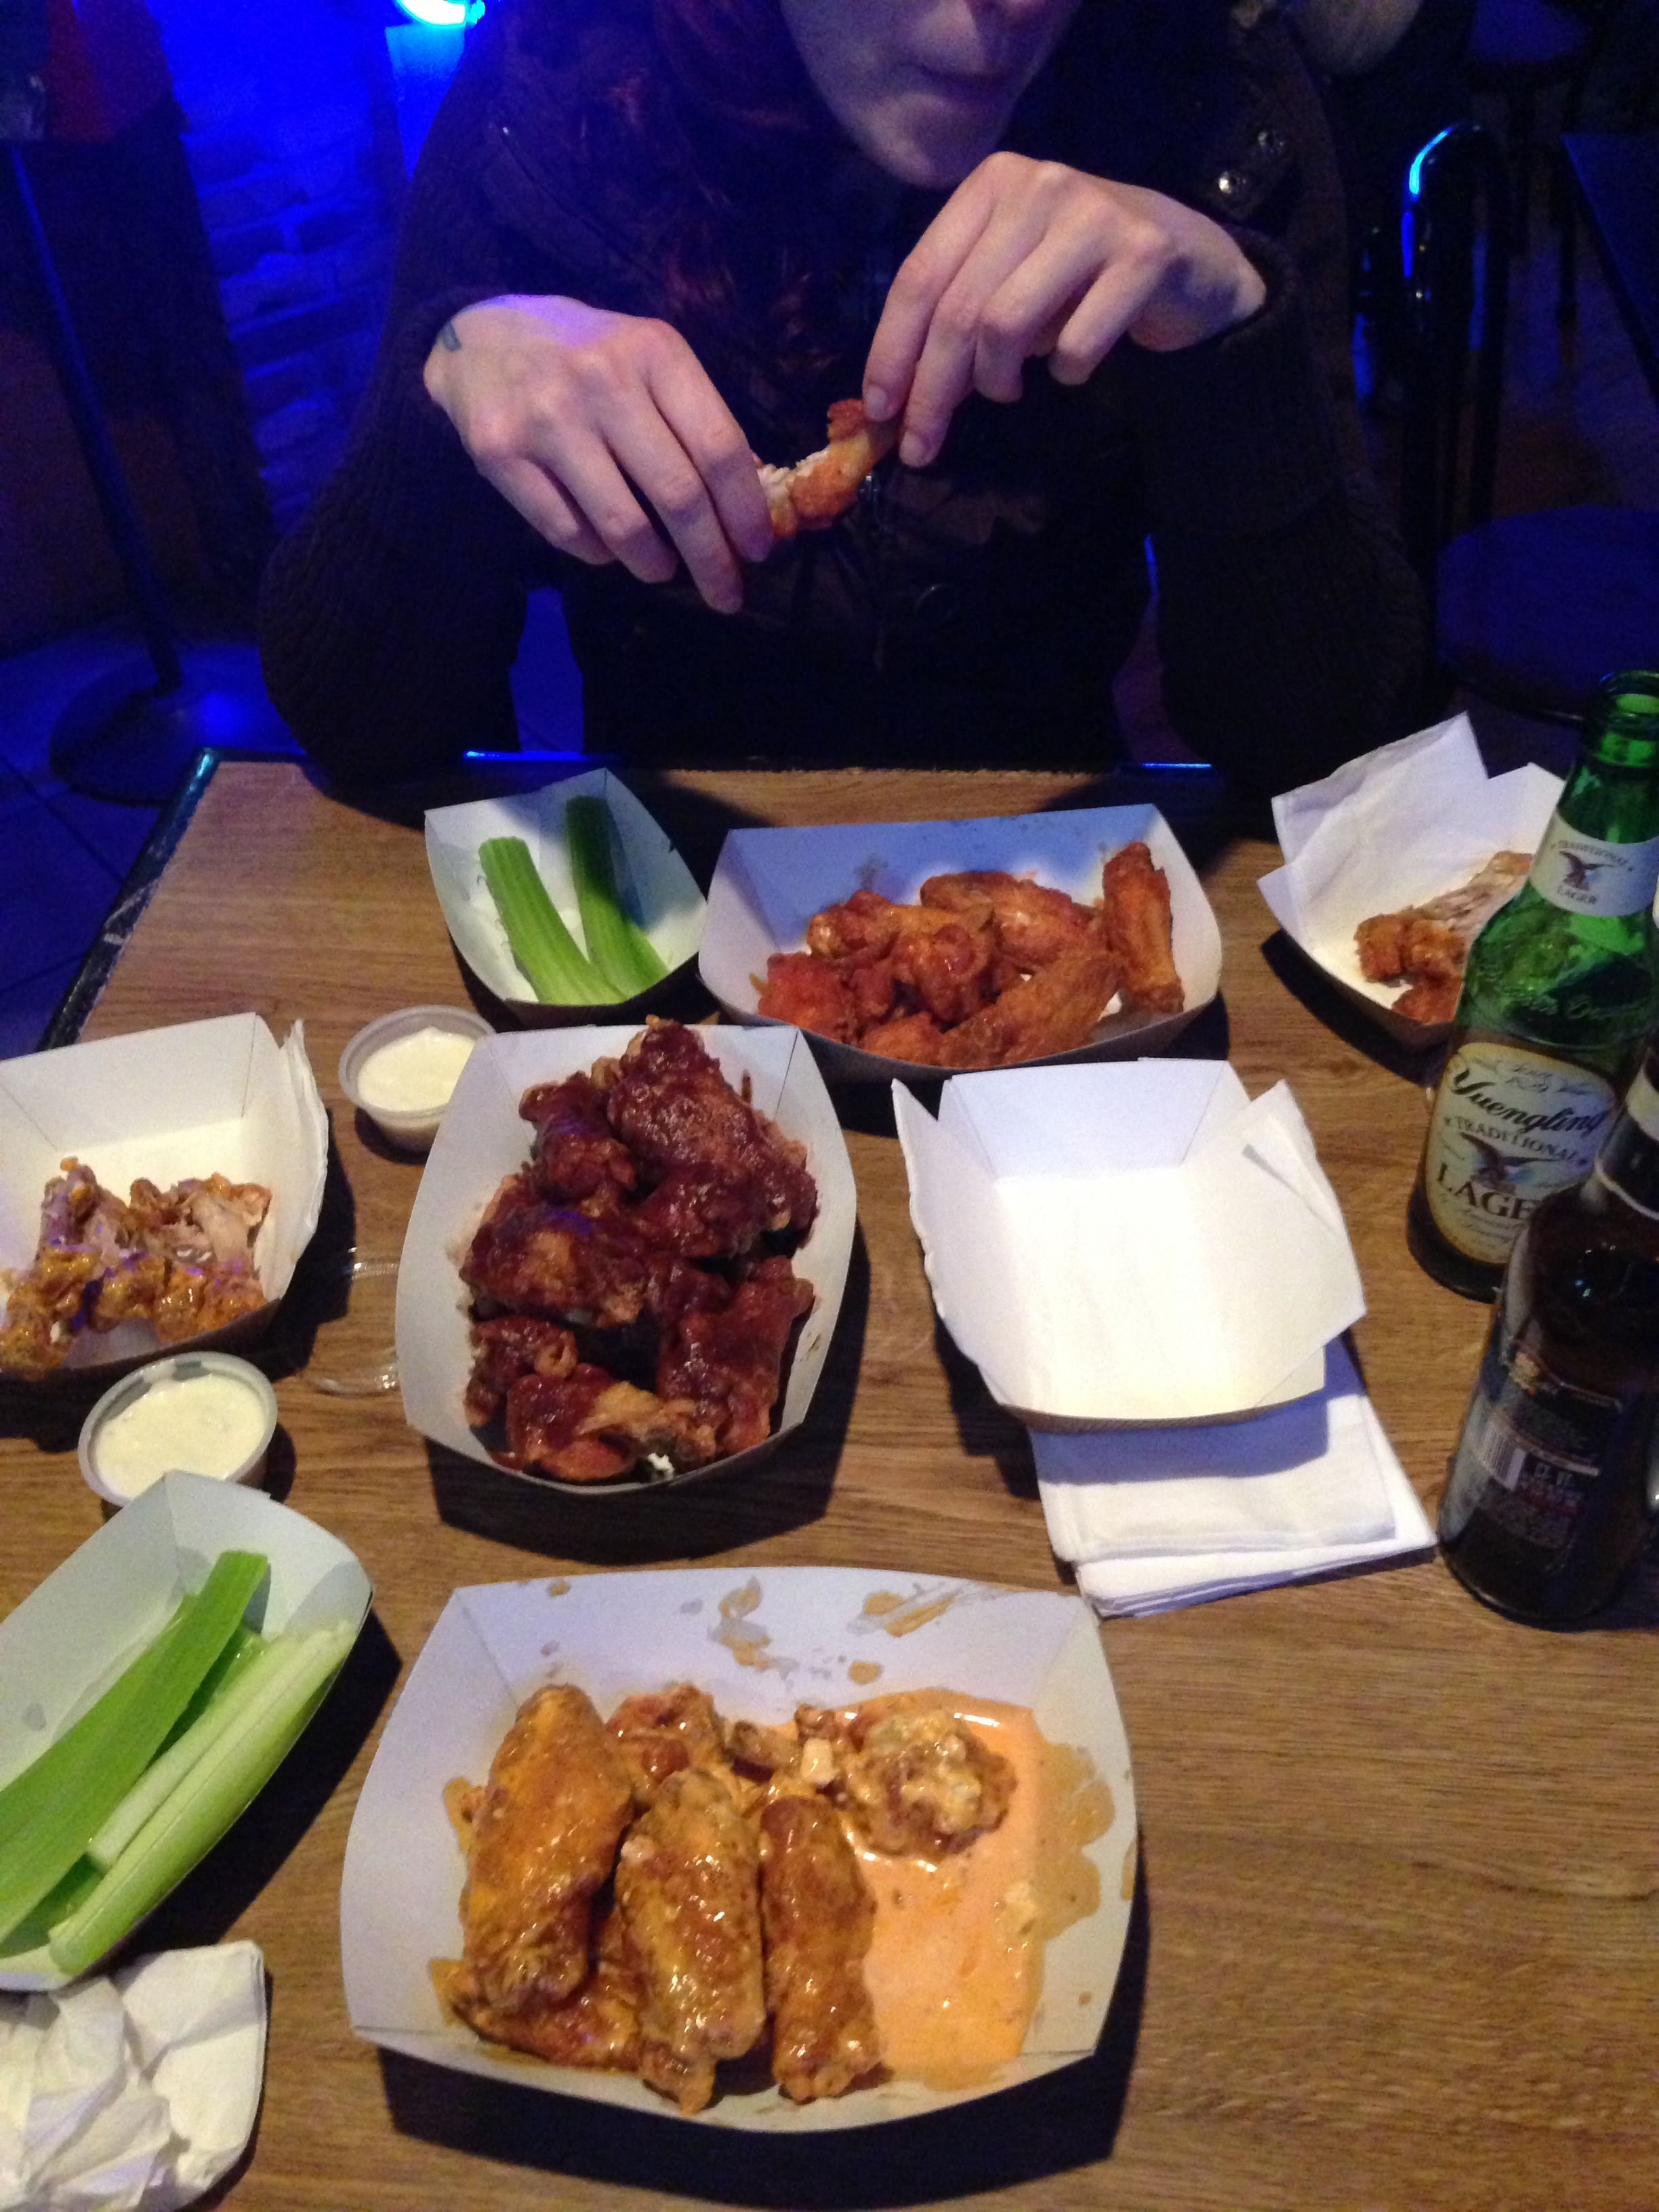 Wing night!!! Spicy blue cheese, A-1, and Hot wings! Good beer and good company!